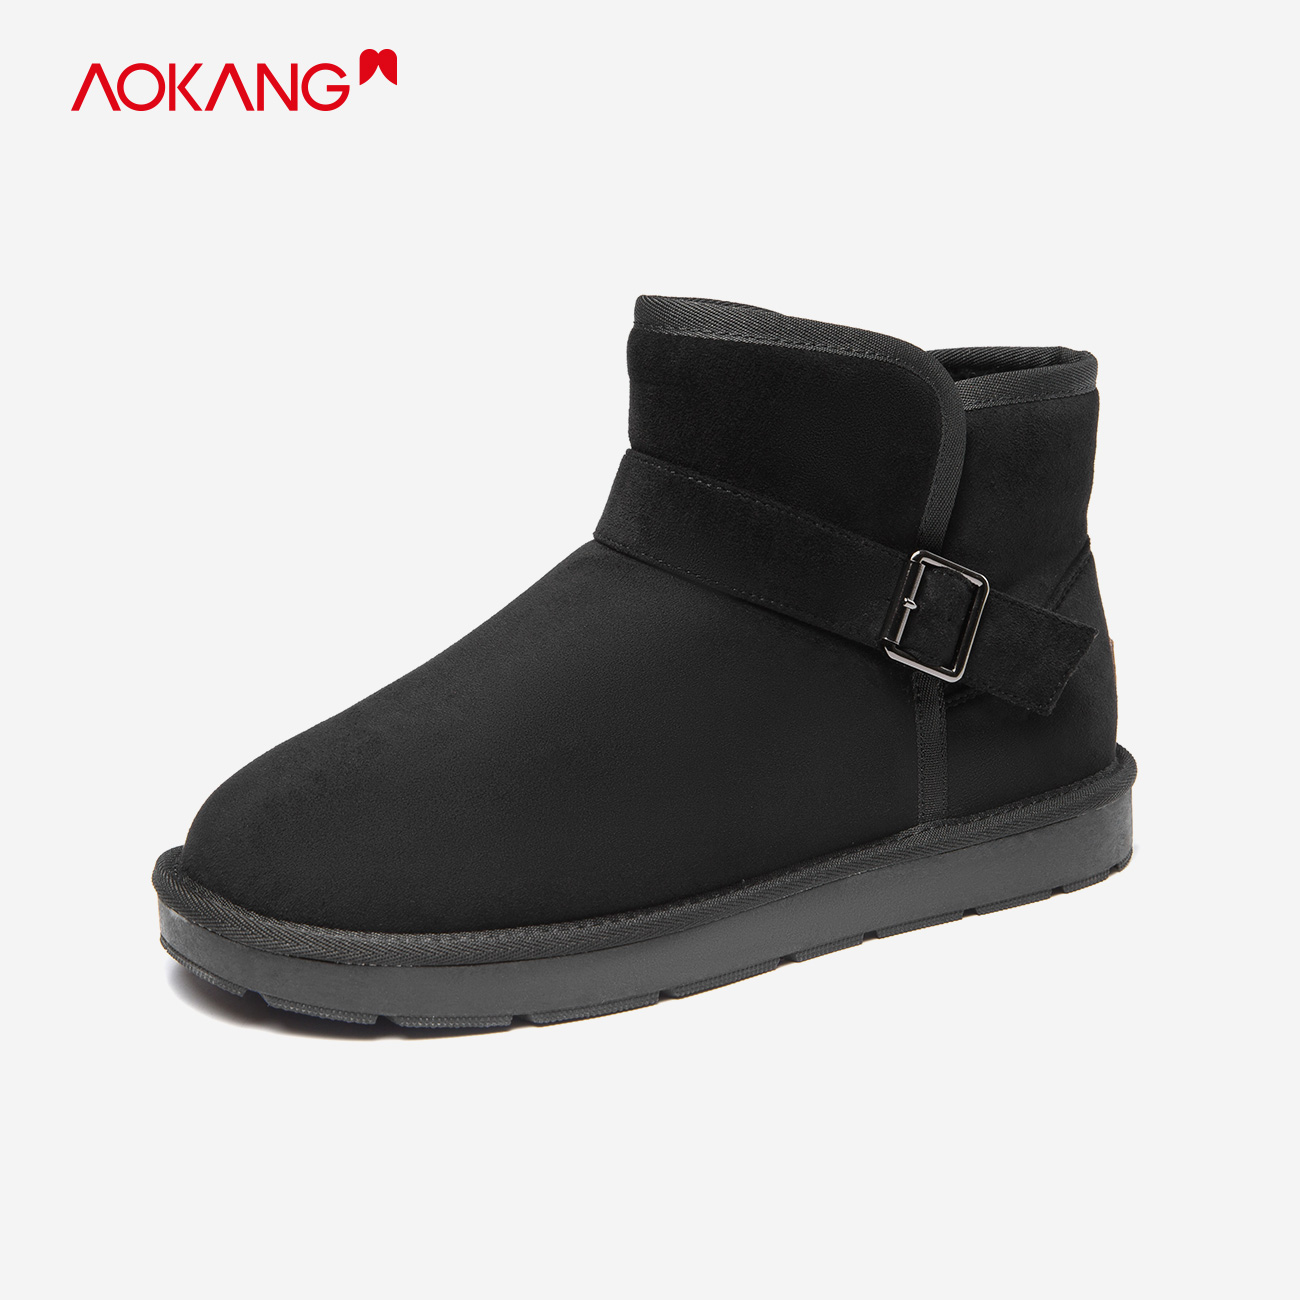 Aokang mens shoes 2020 winter new snow boots Plush warm thickening antiskid one foot outdoor cotton shoes